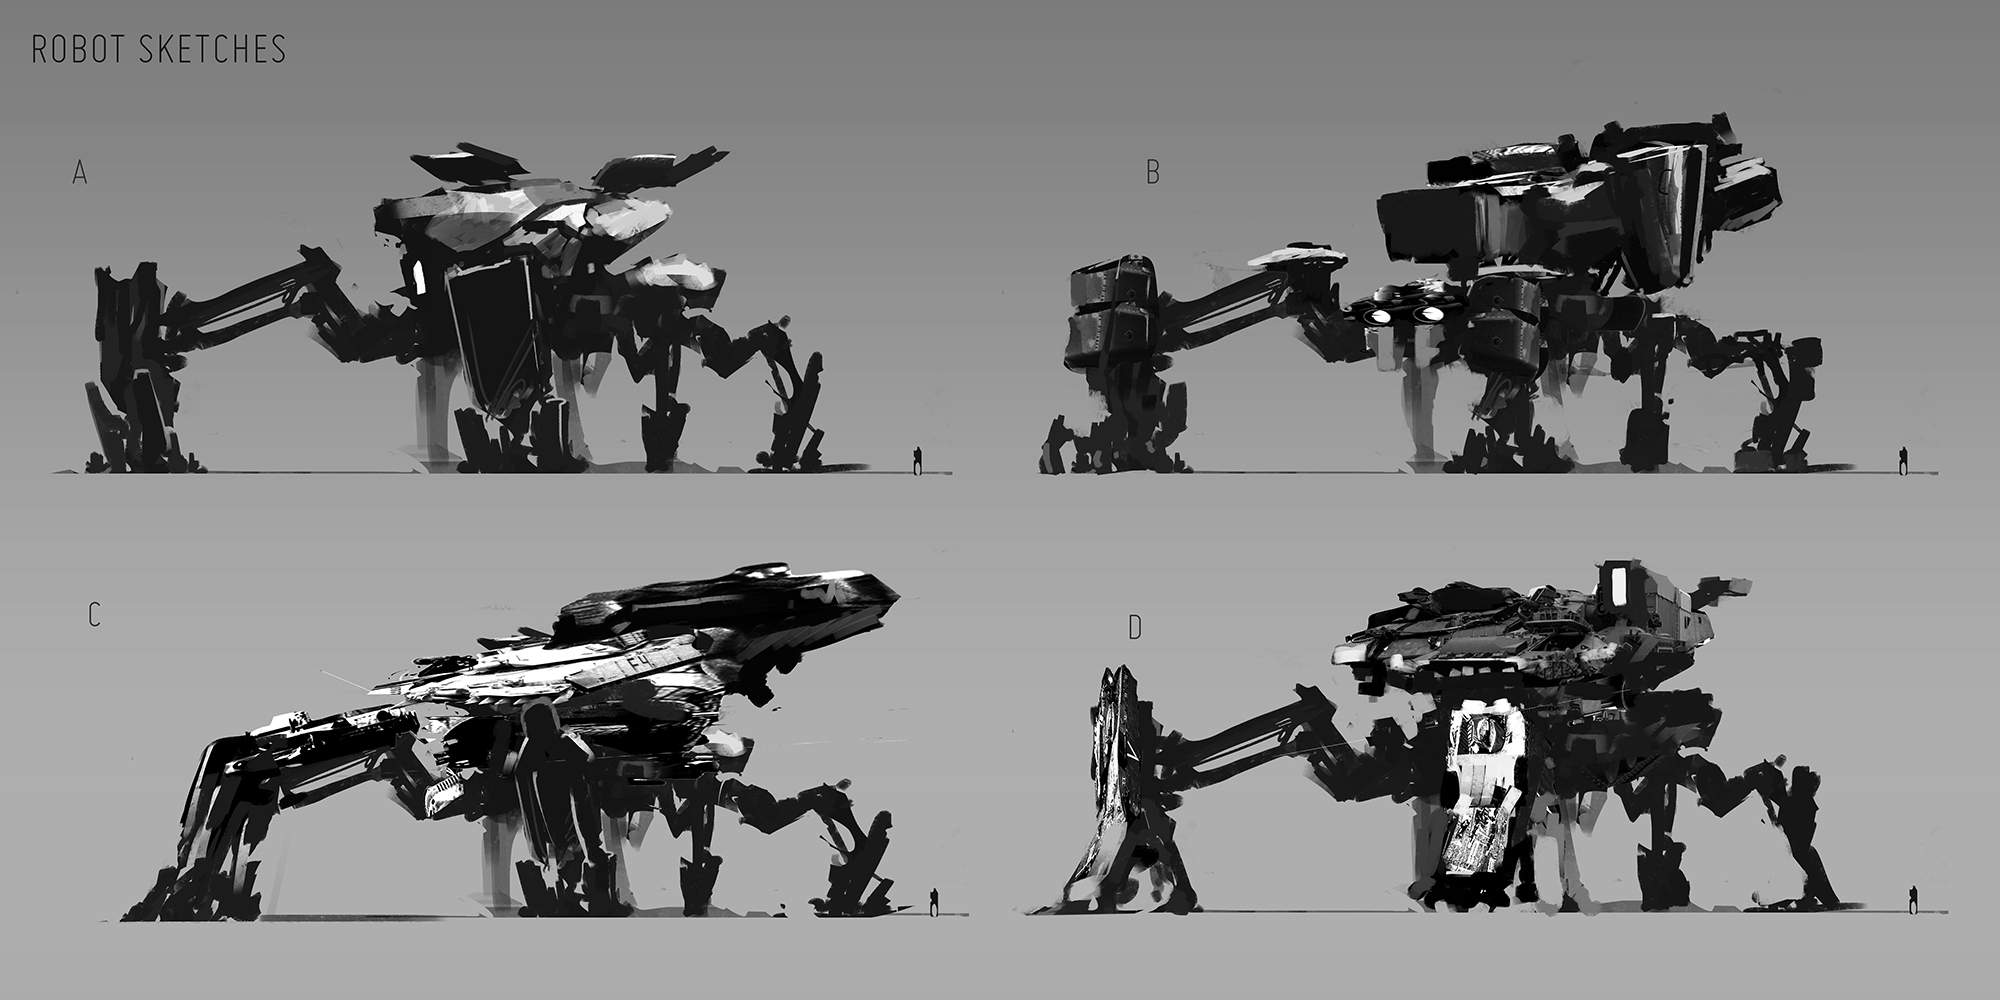 SEAM_Robot_Sketches_20130803.jpg